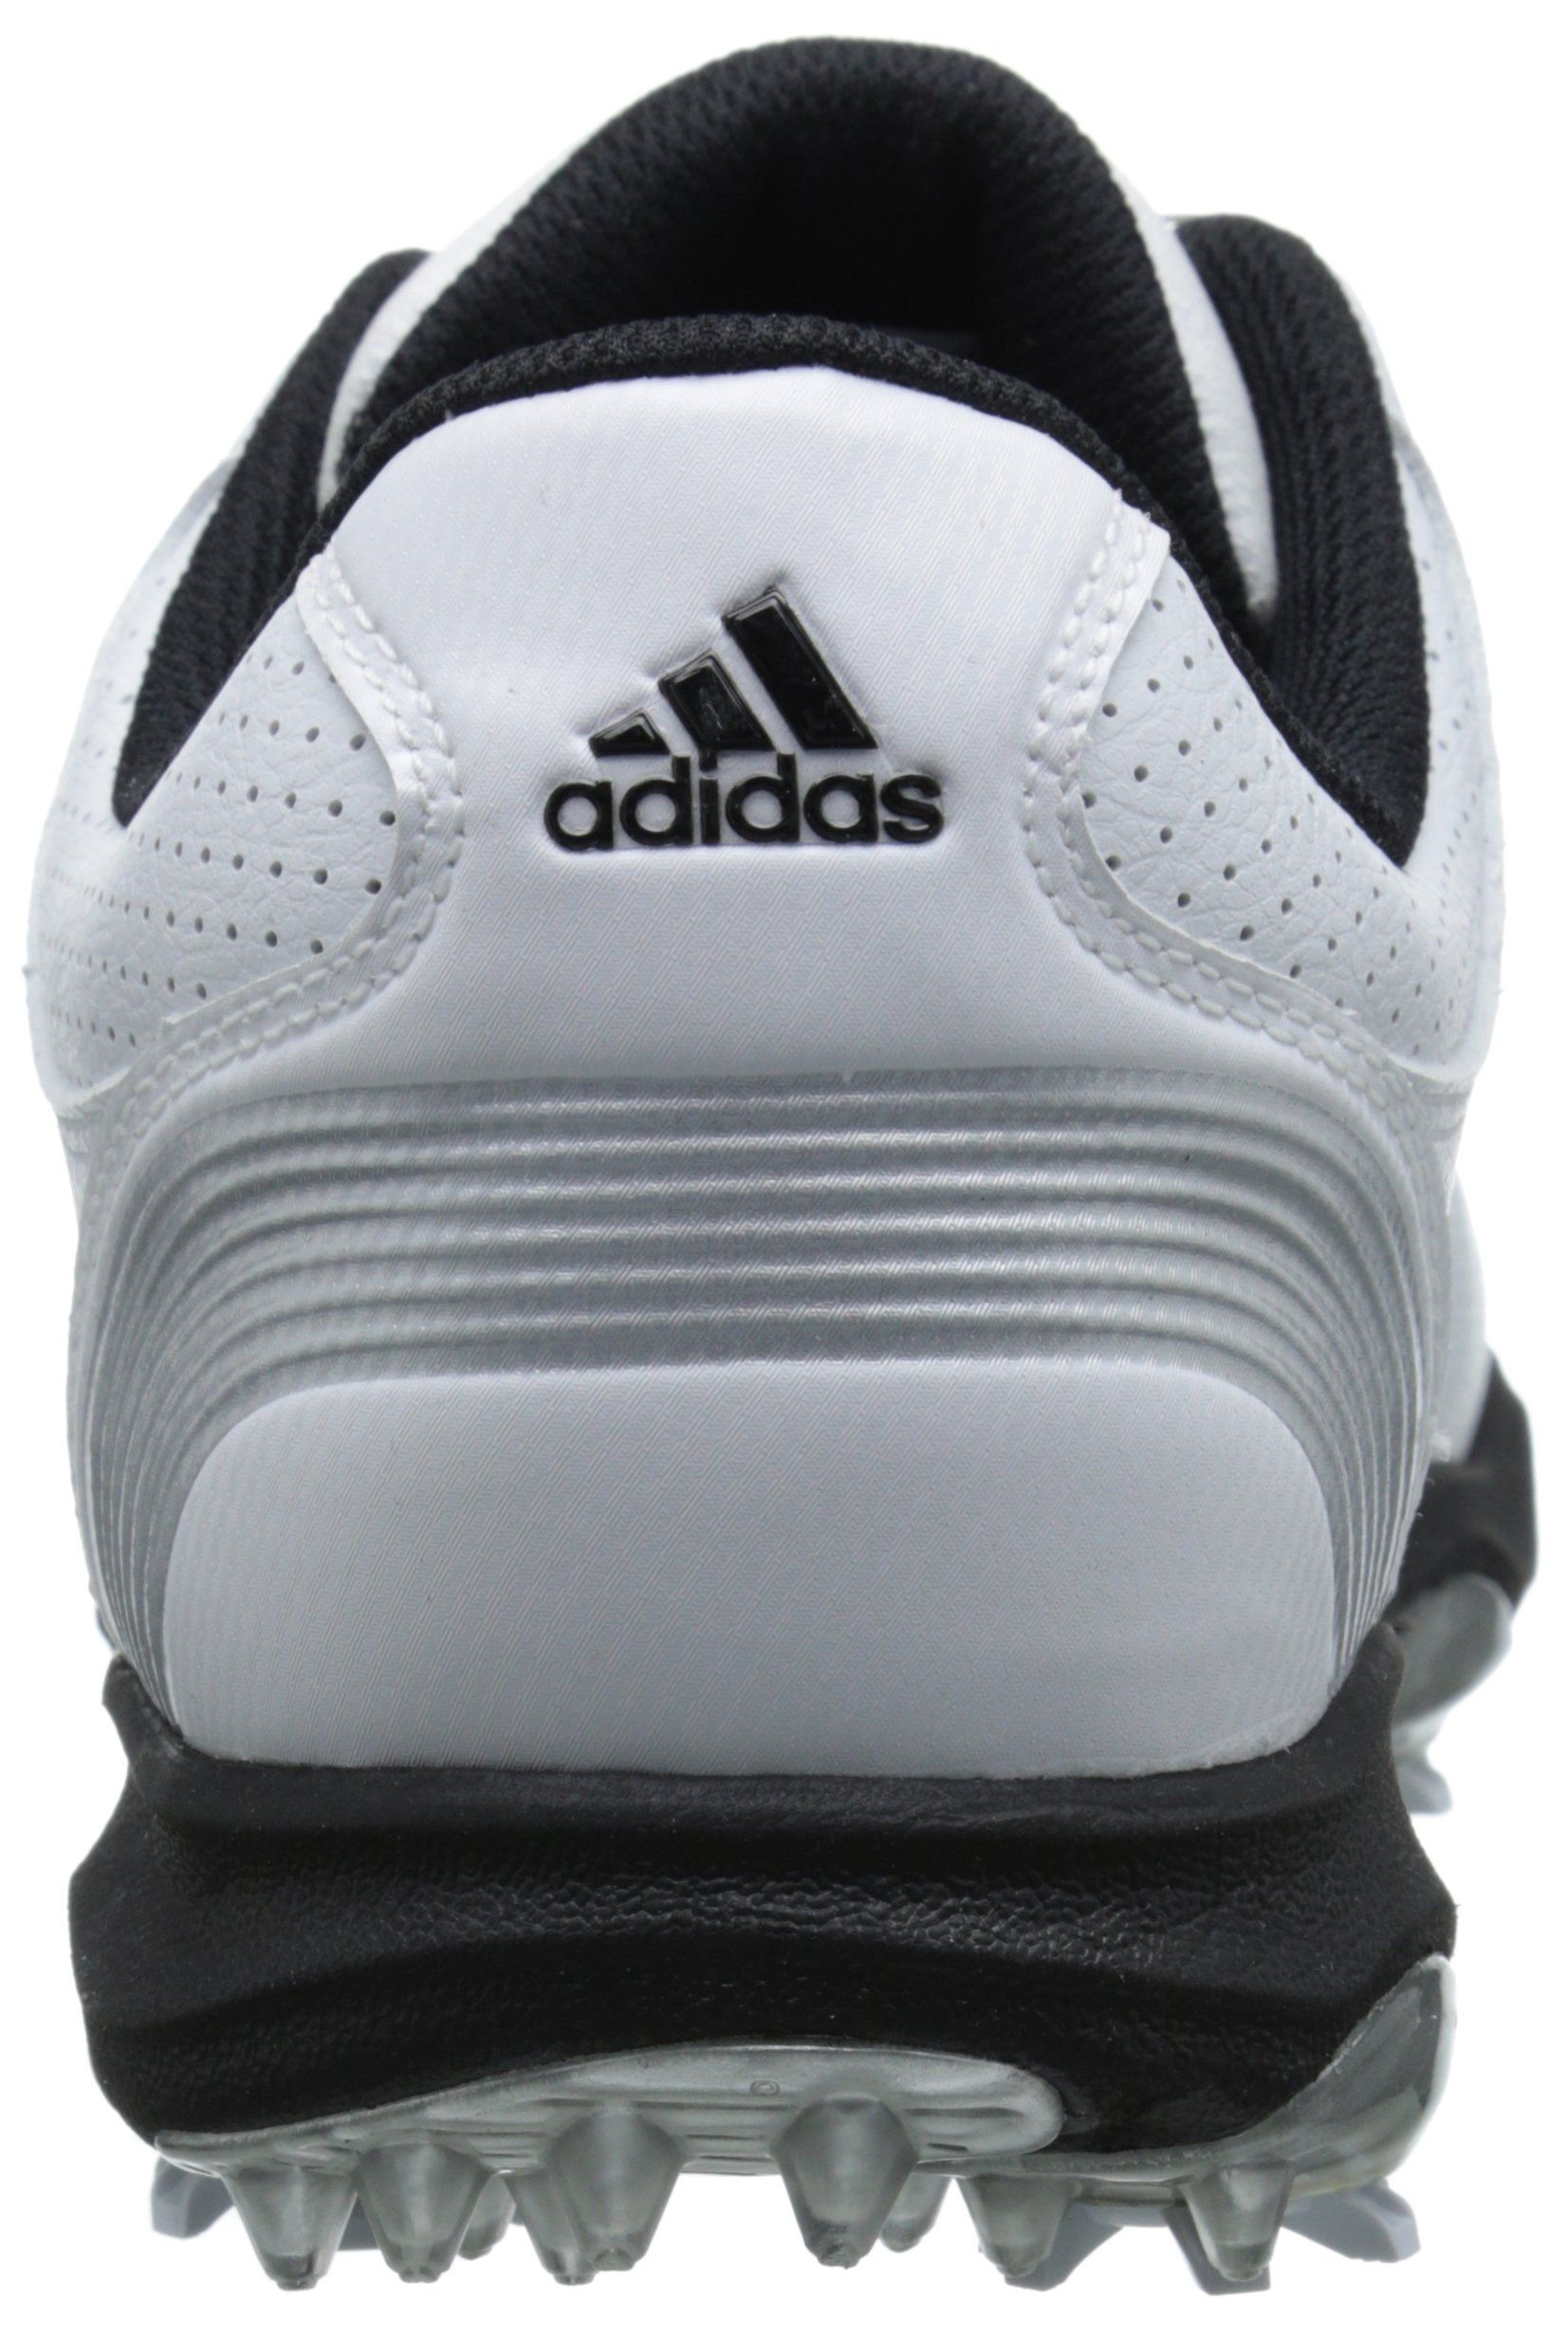 buy popular c0e59 f6bb6 Golf Shoes     adidas Mens Tour360 X Boa Golf Cleated Shoe Running White Silver  Metallic Core Black 11.5 M US   You can find more details by seeing the ...